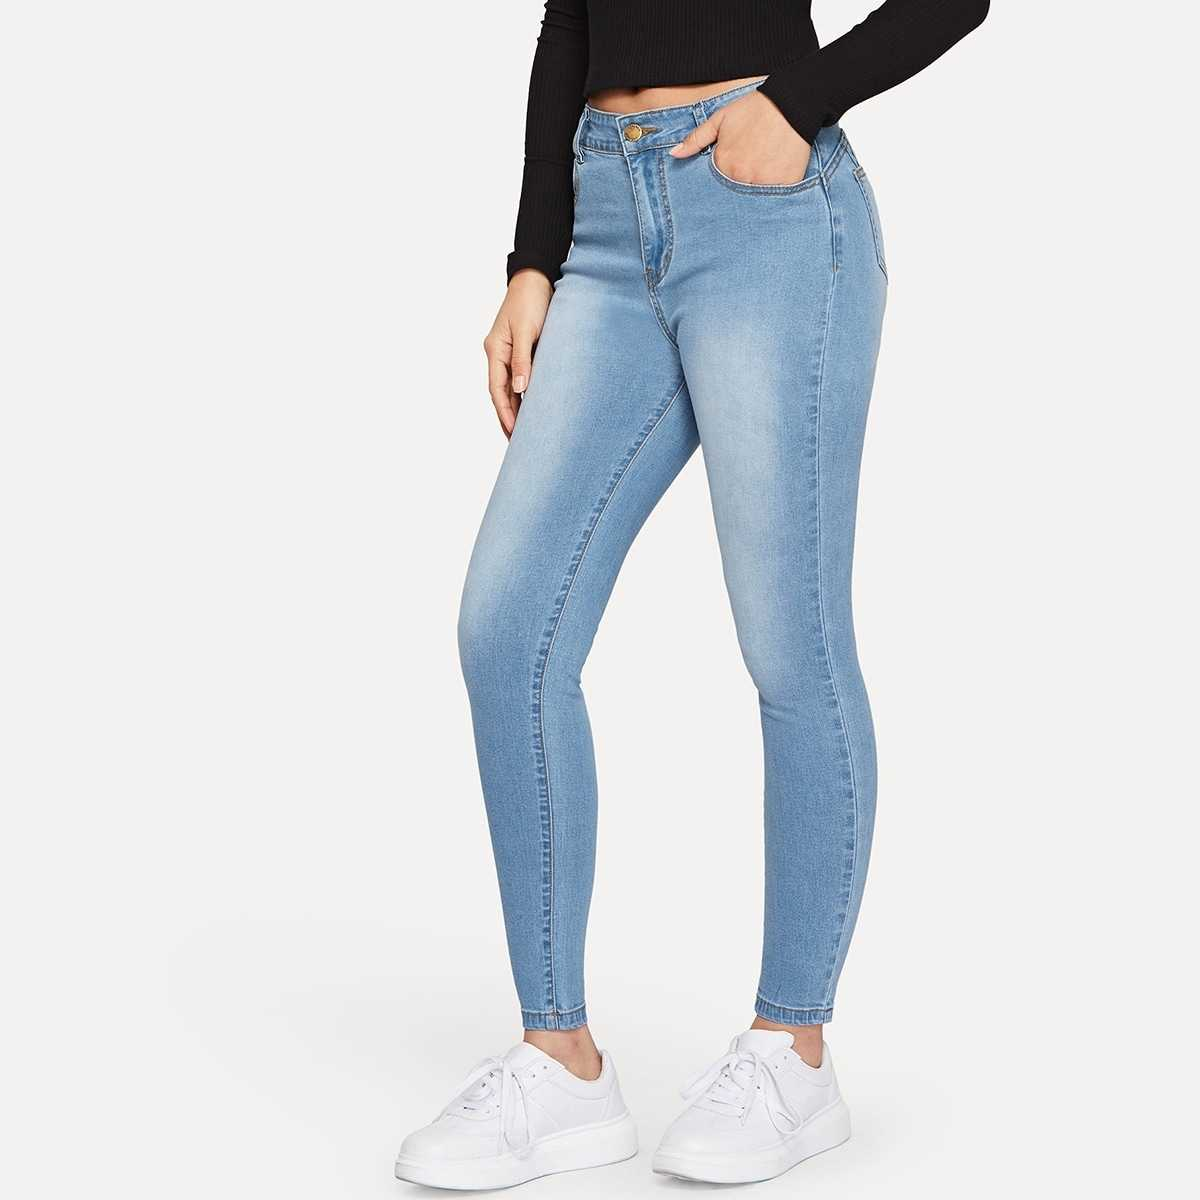 Button Fly Skinny Jeans in Blue by ROMWE on GOOFASH